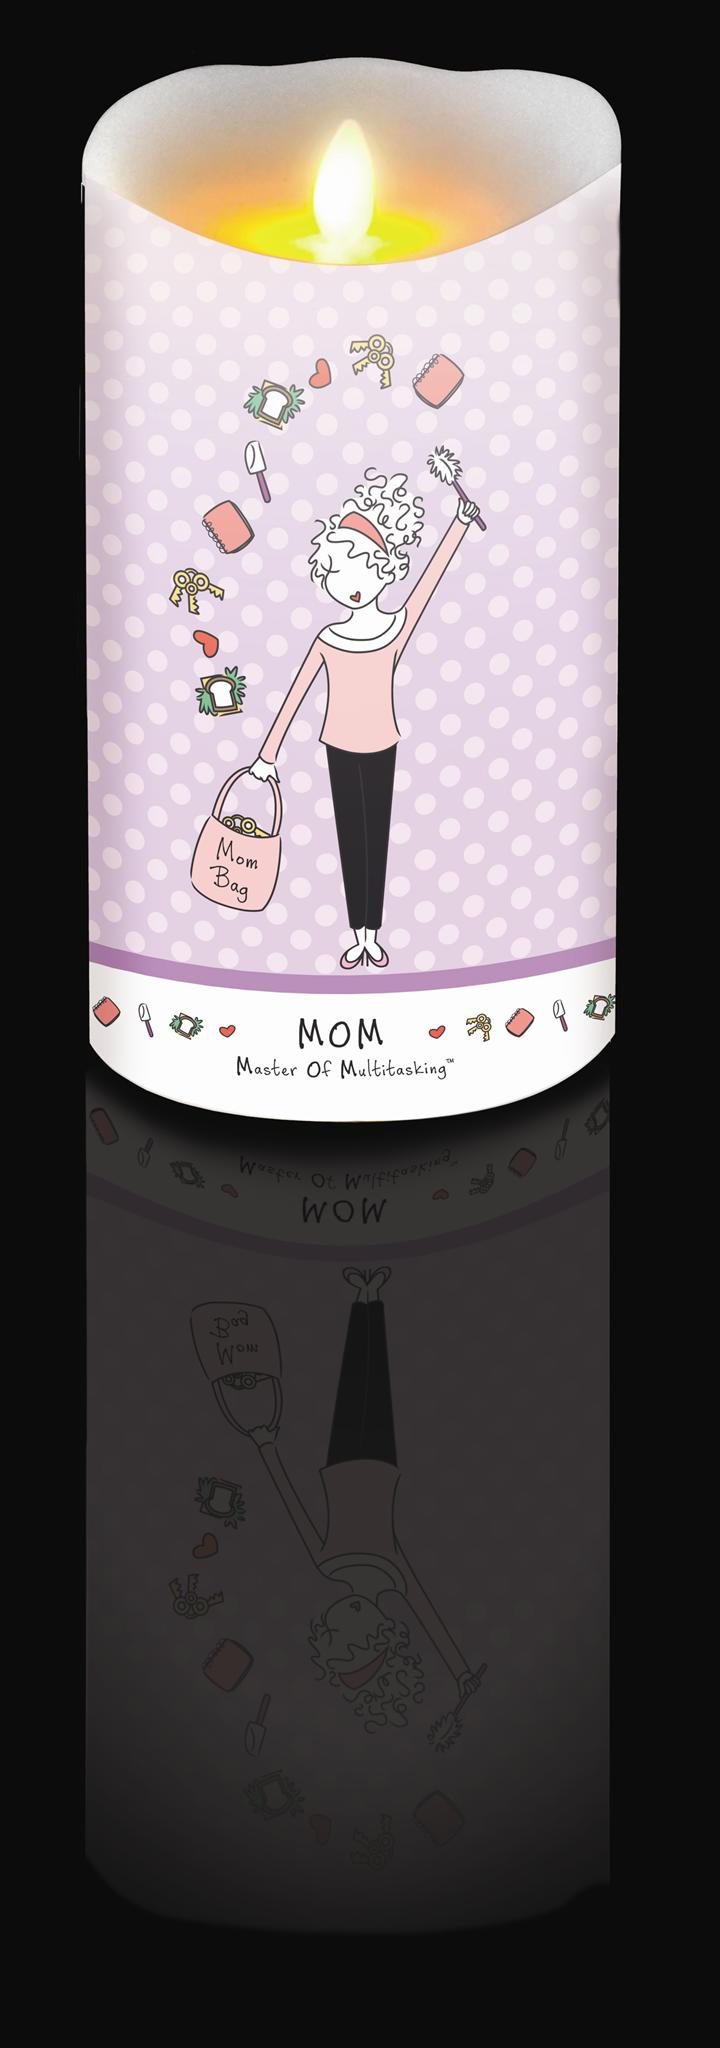 7 Inch Philosophie Luminara Candle - Mom